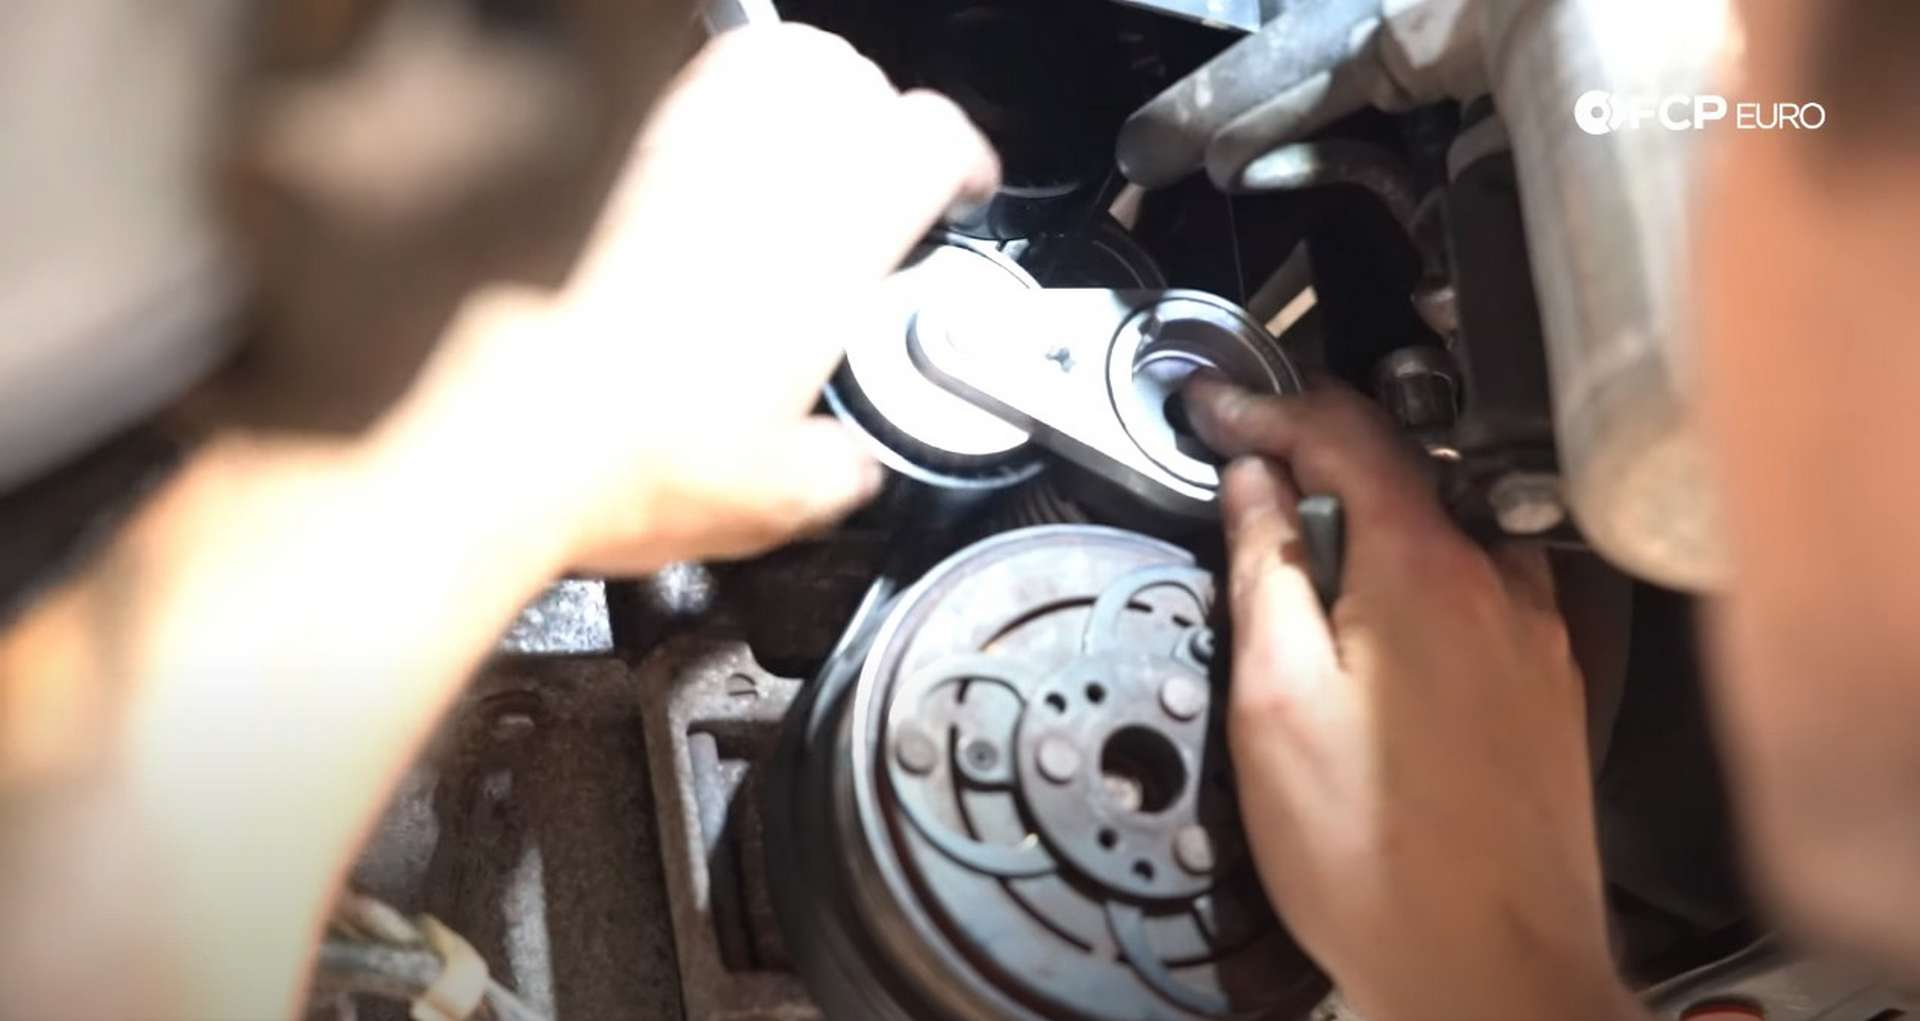 DIY Volvo Alternator and Serpentine Belt Replacement installing the outer tensioner